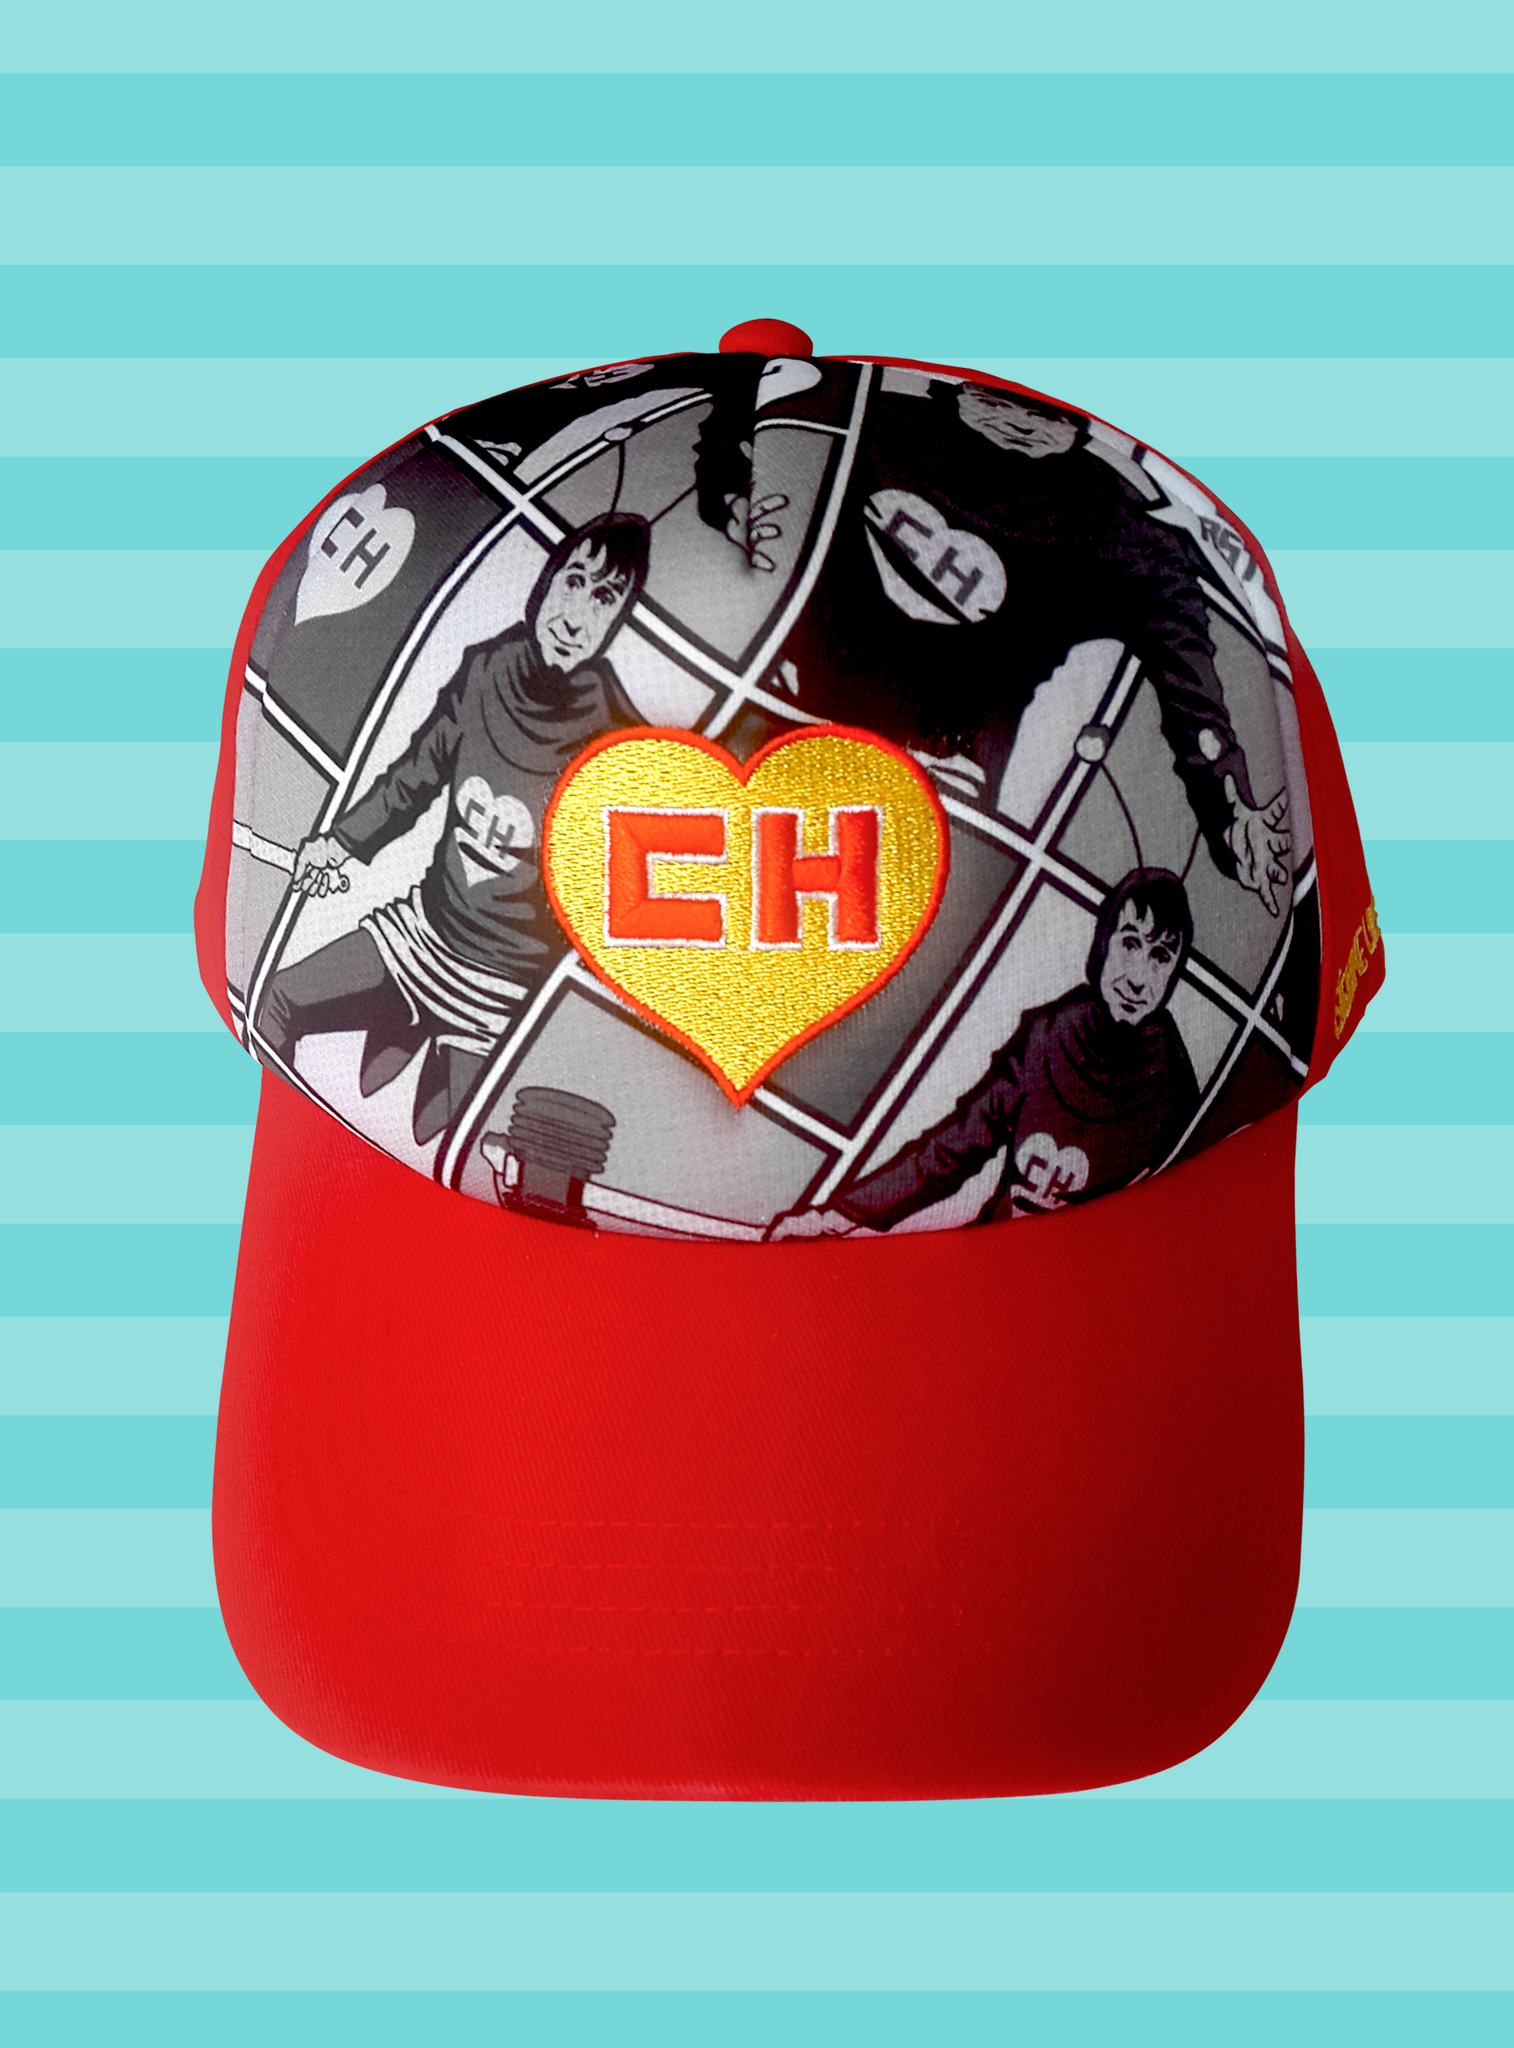 Gorra para adultos con Chapulín Colorado en estilo cómic sublimado en  blanco y negro Baseball cap for adults with comic-style Chapulin Colorano  on black and ... 61c8b254d7e